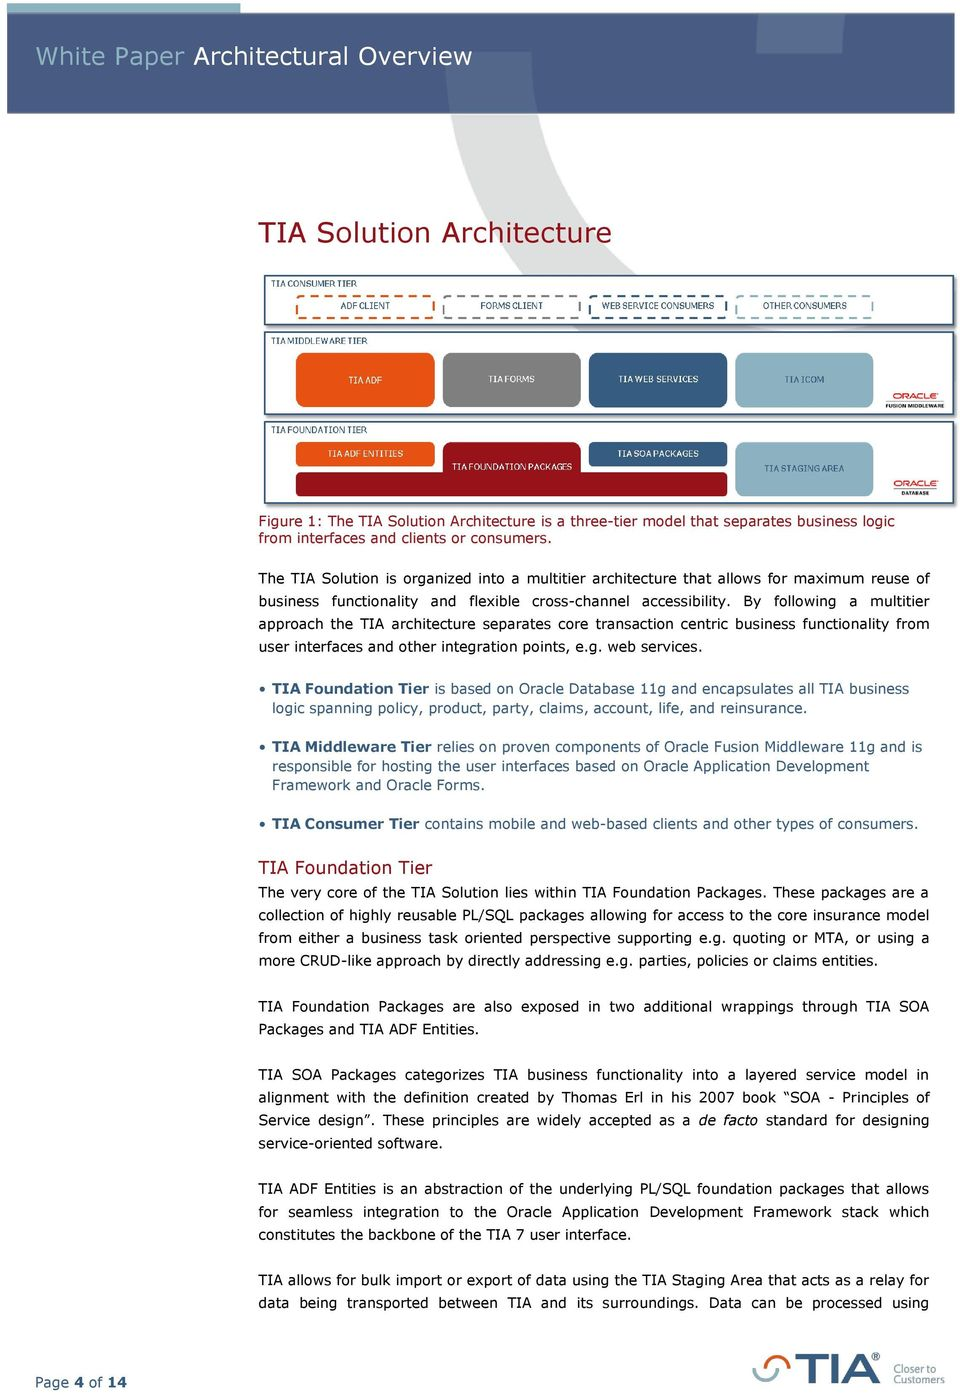 By following a multitier approach the TIA architecture separates core transaction centric business functionality from user interfaces and other integration points, e.g. web services.